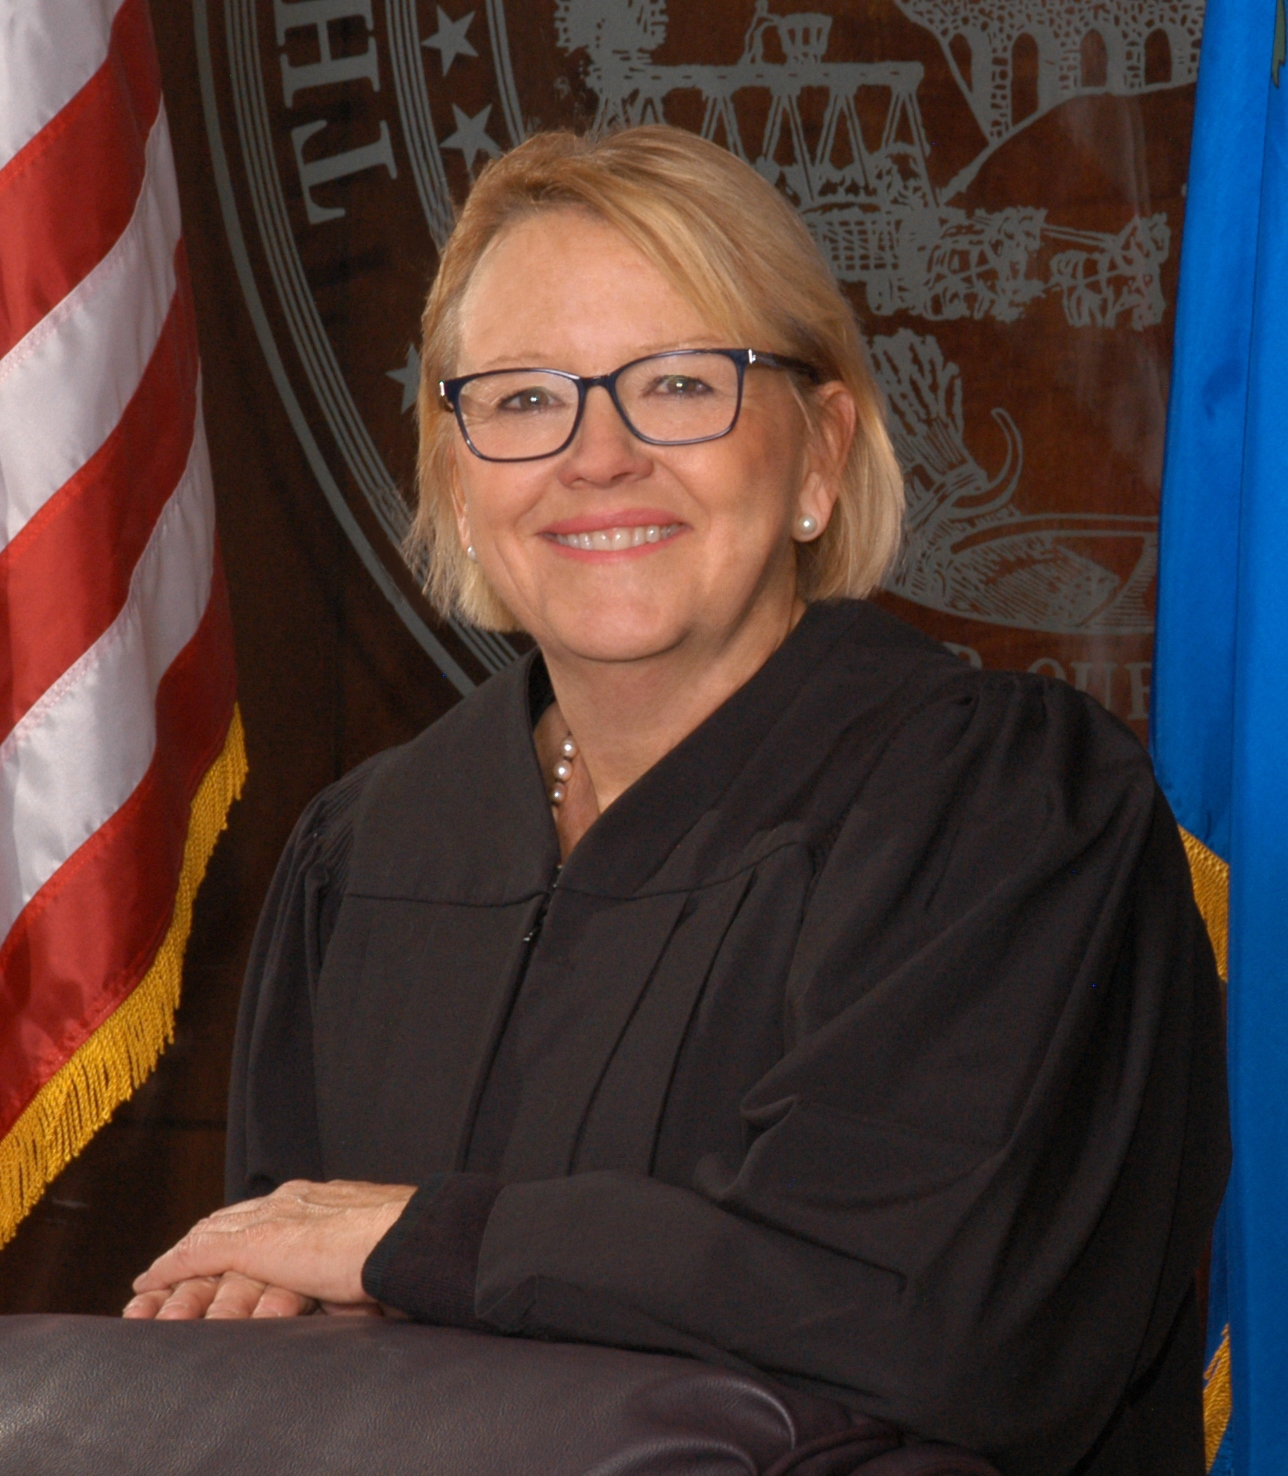 Judge Shelly T. O'Neill